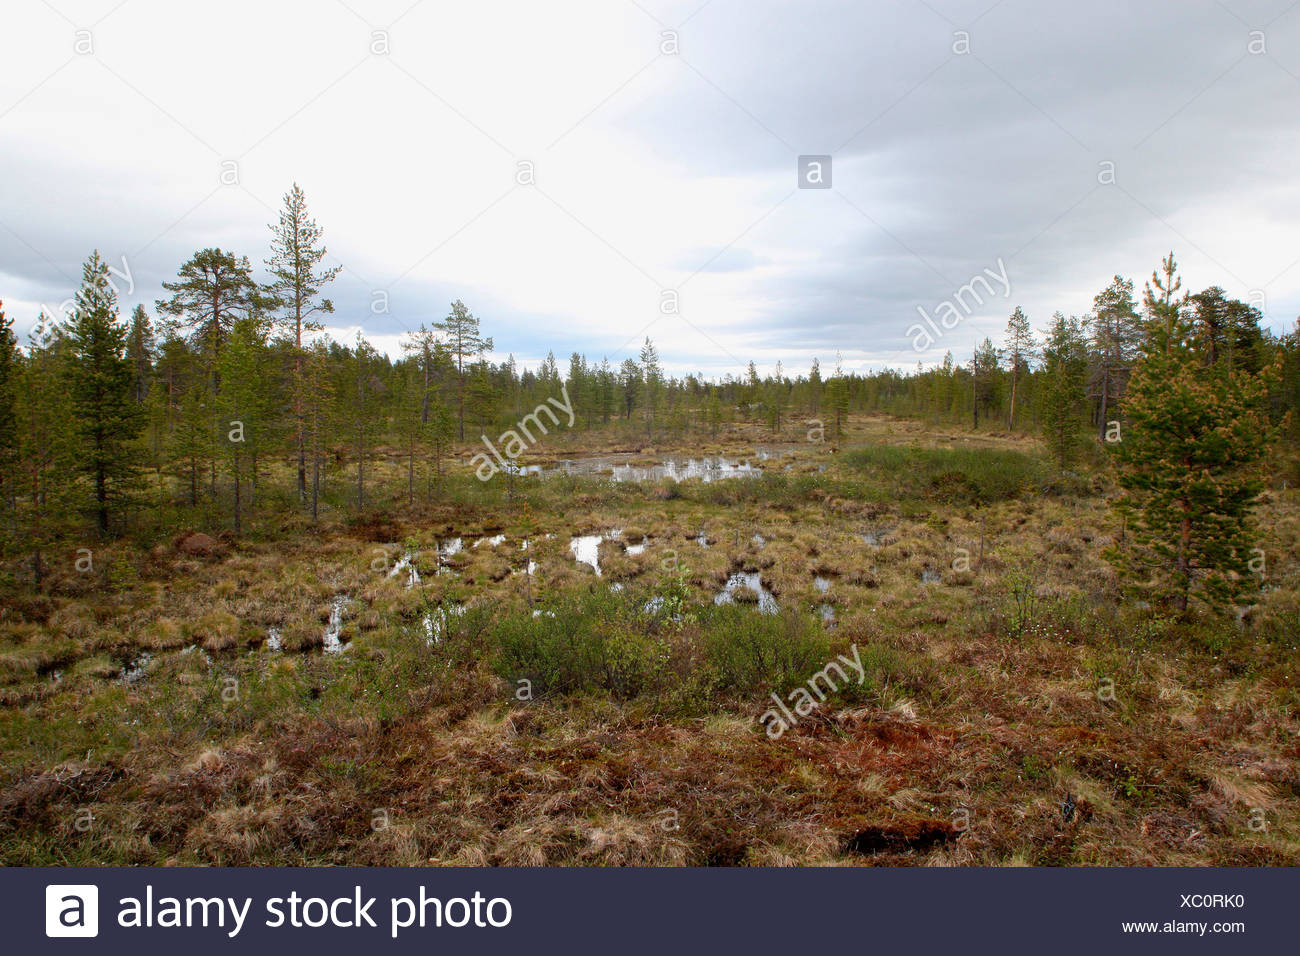 Pines, birches, mountain tundra, Lapland, Finland, Europe - Stock Image